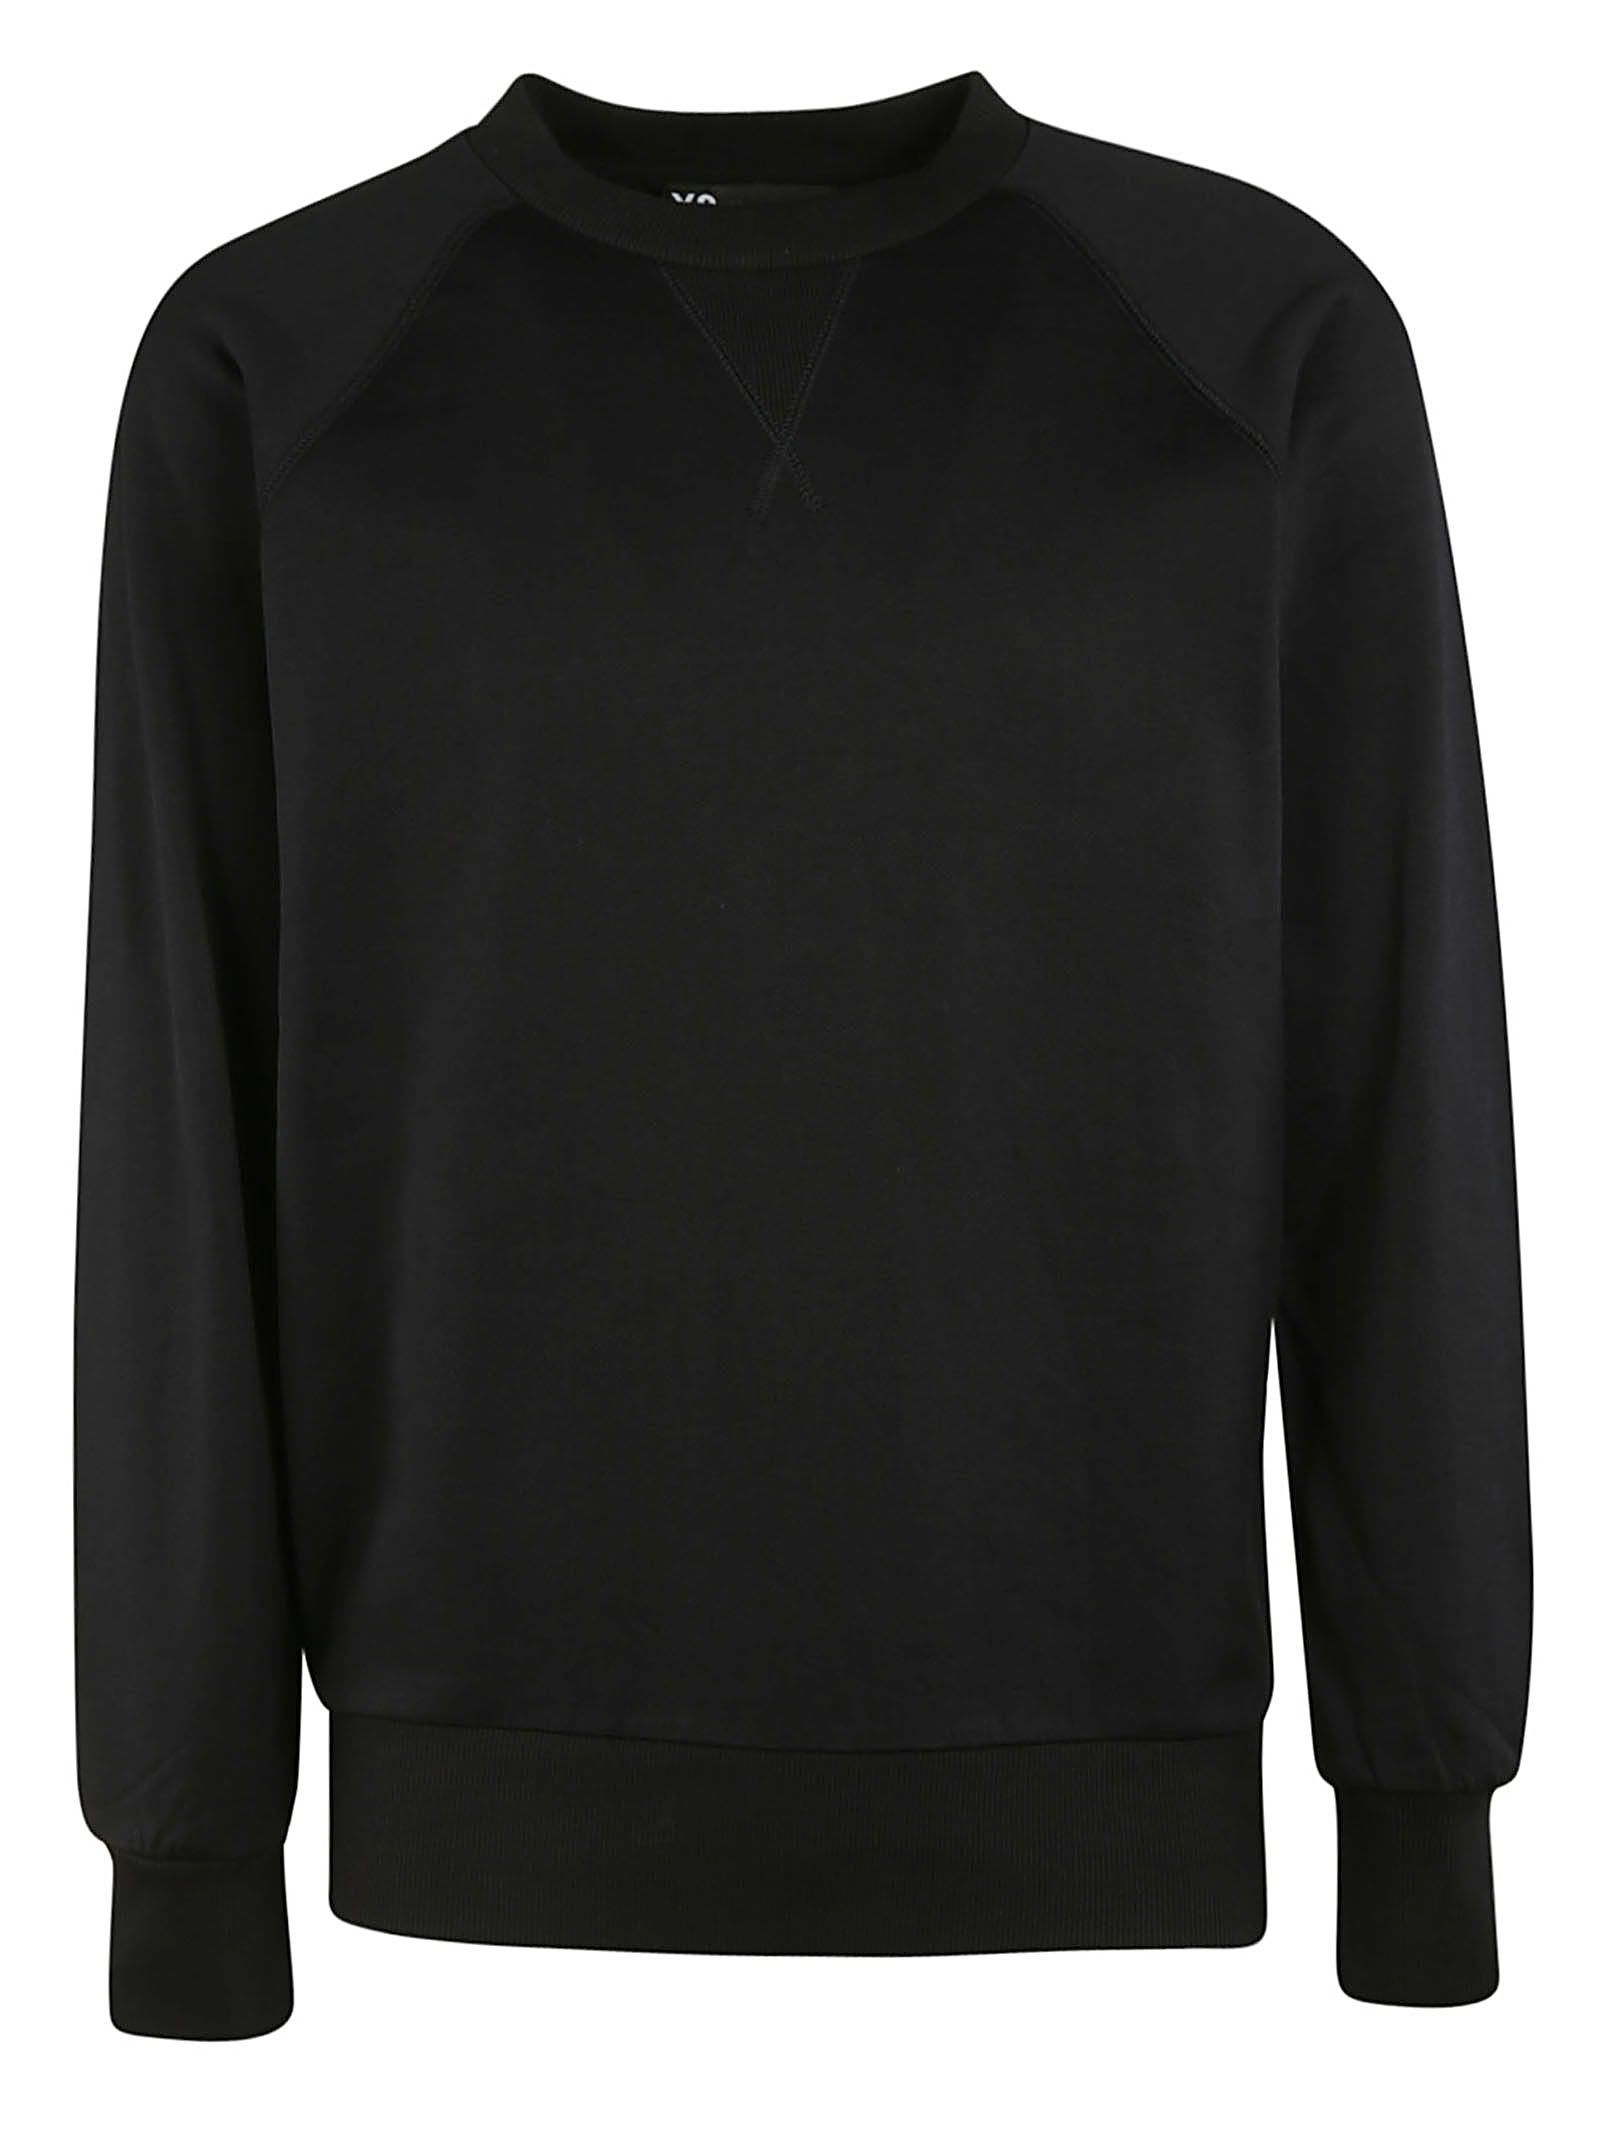 fad11f61e ADIDAS ORIGINALS Y-3 CLASSIC SWEATSHIRT.  adidasoriginals  cloth ...